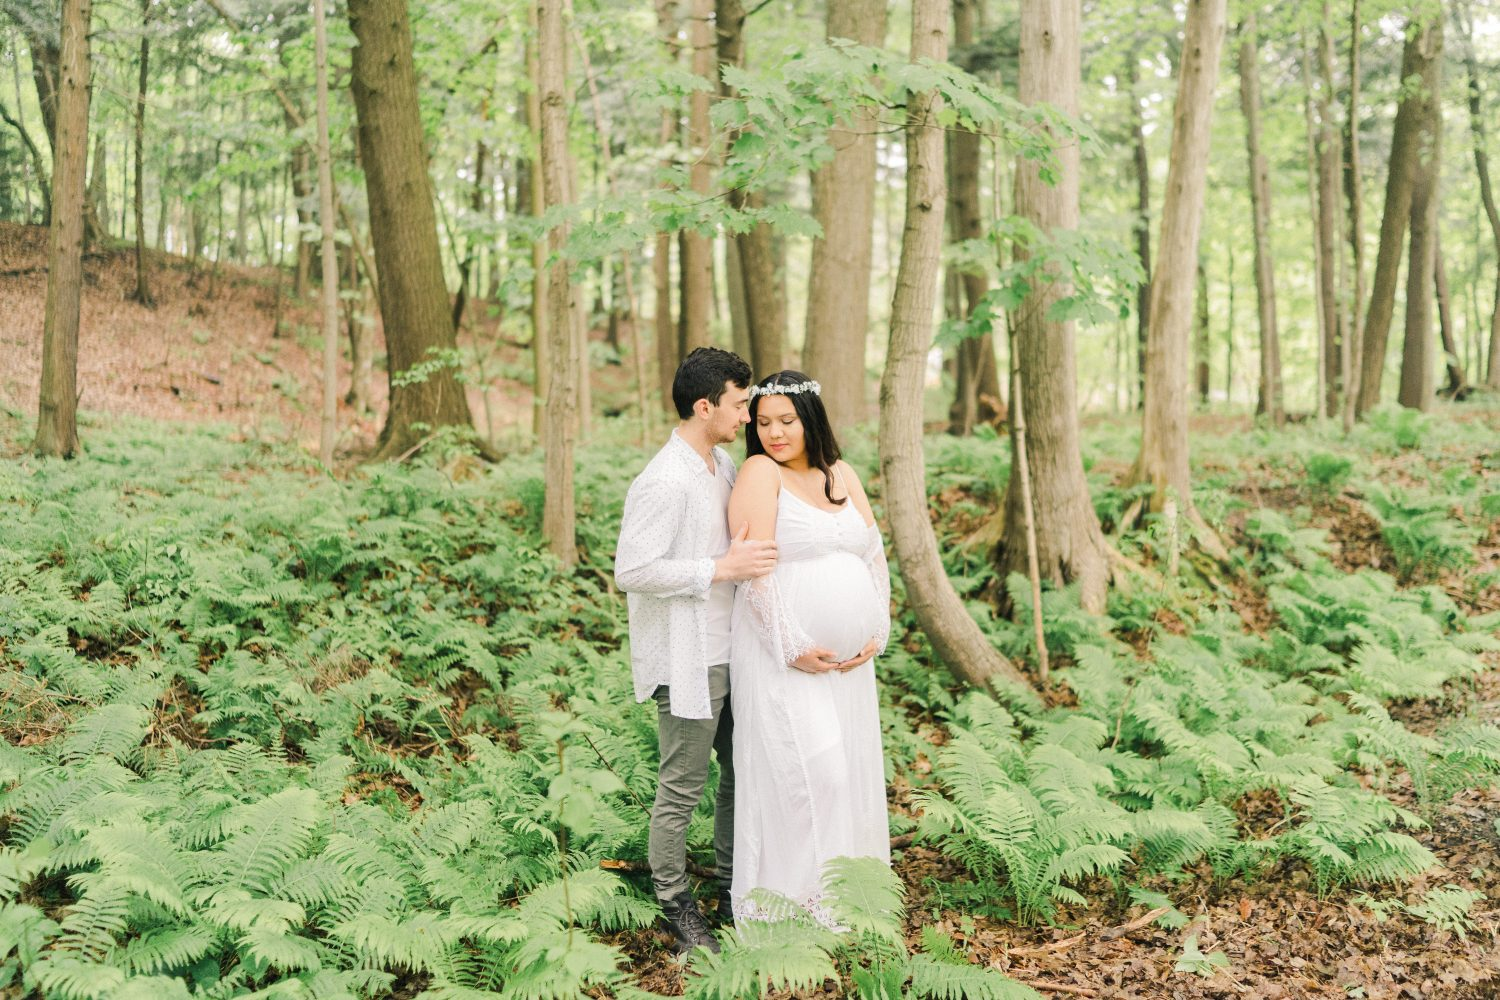 Abigail + Brendan's Maternity Session